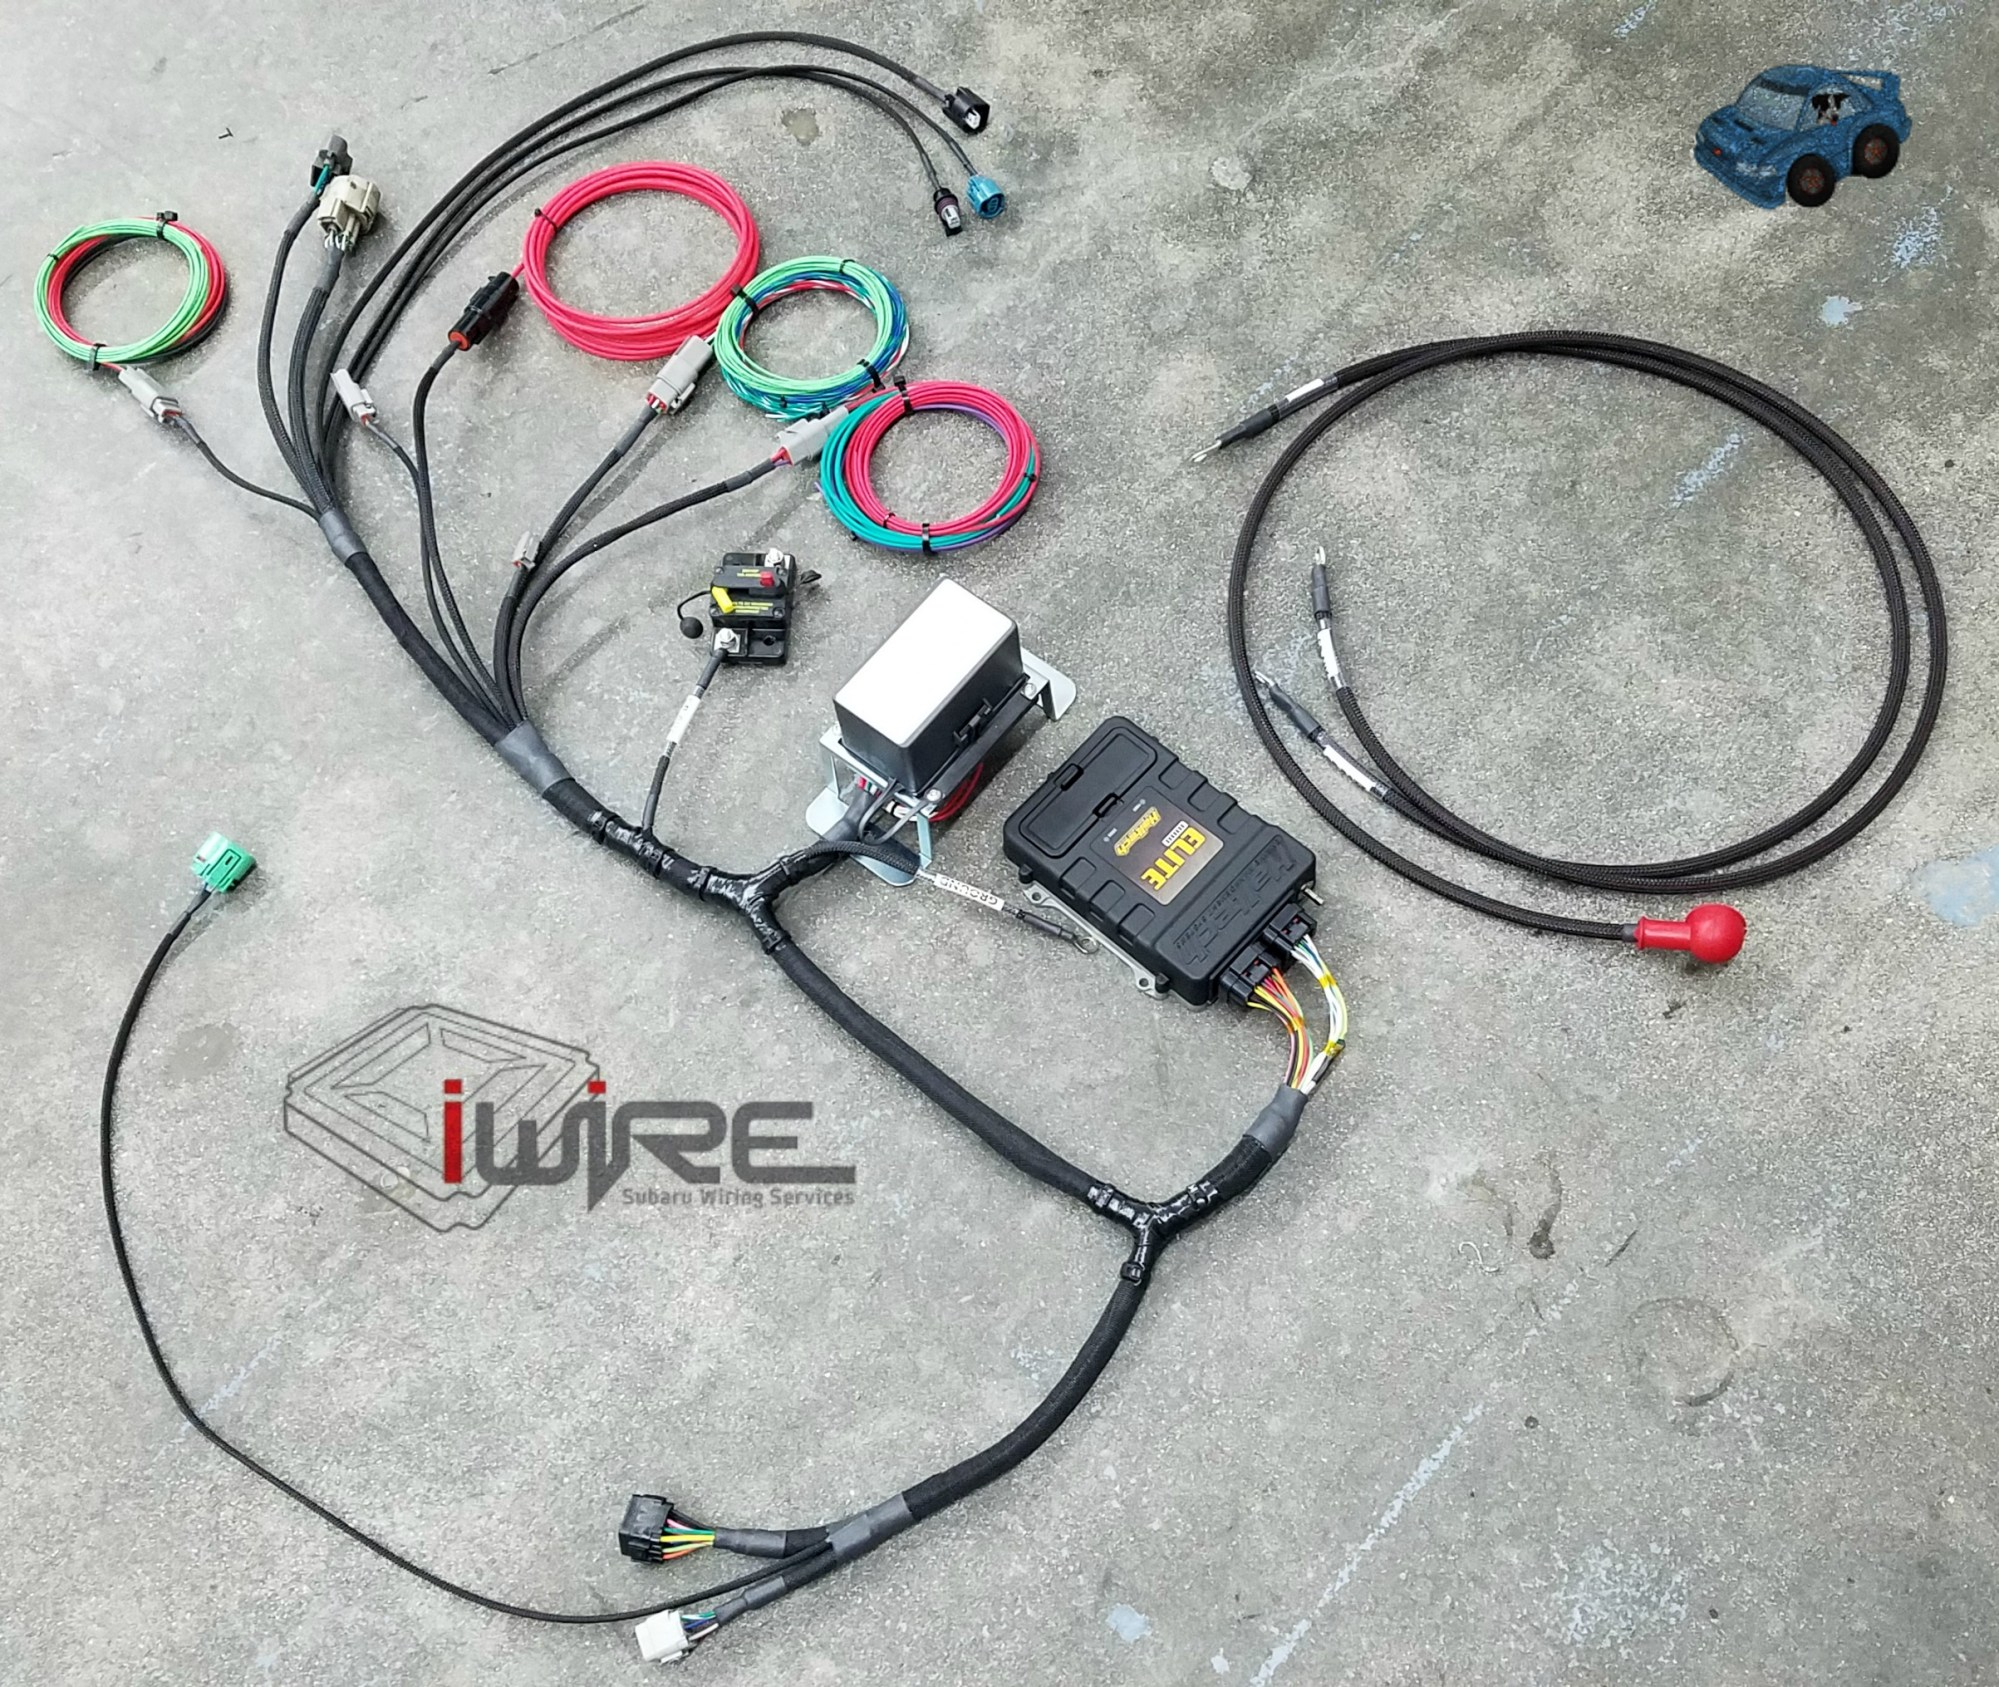 hight resolution of stock ecu vs standalone ecu in your subaru